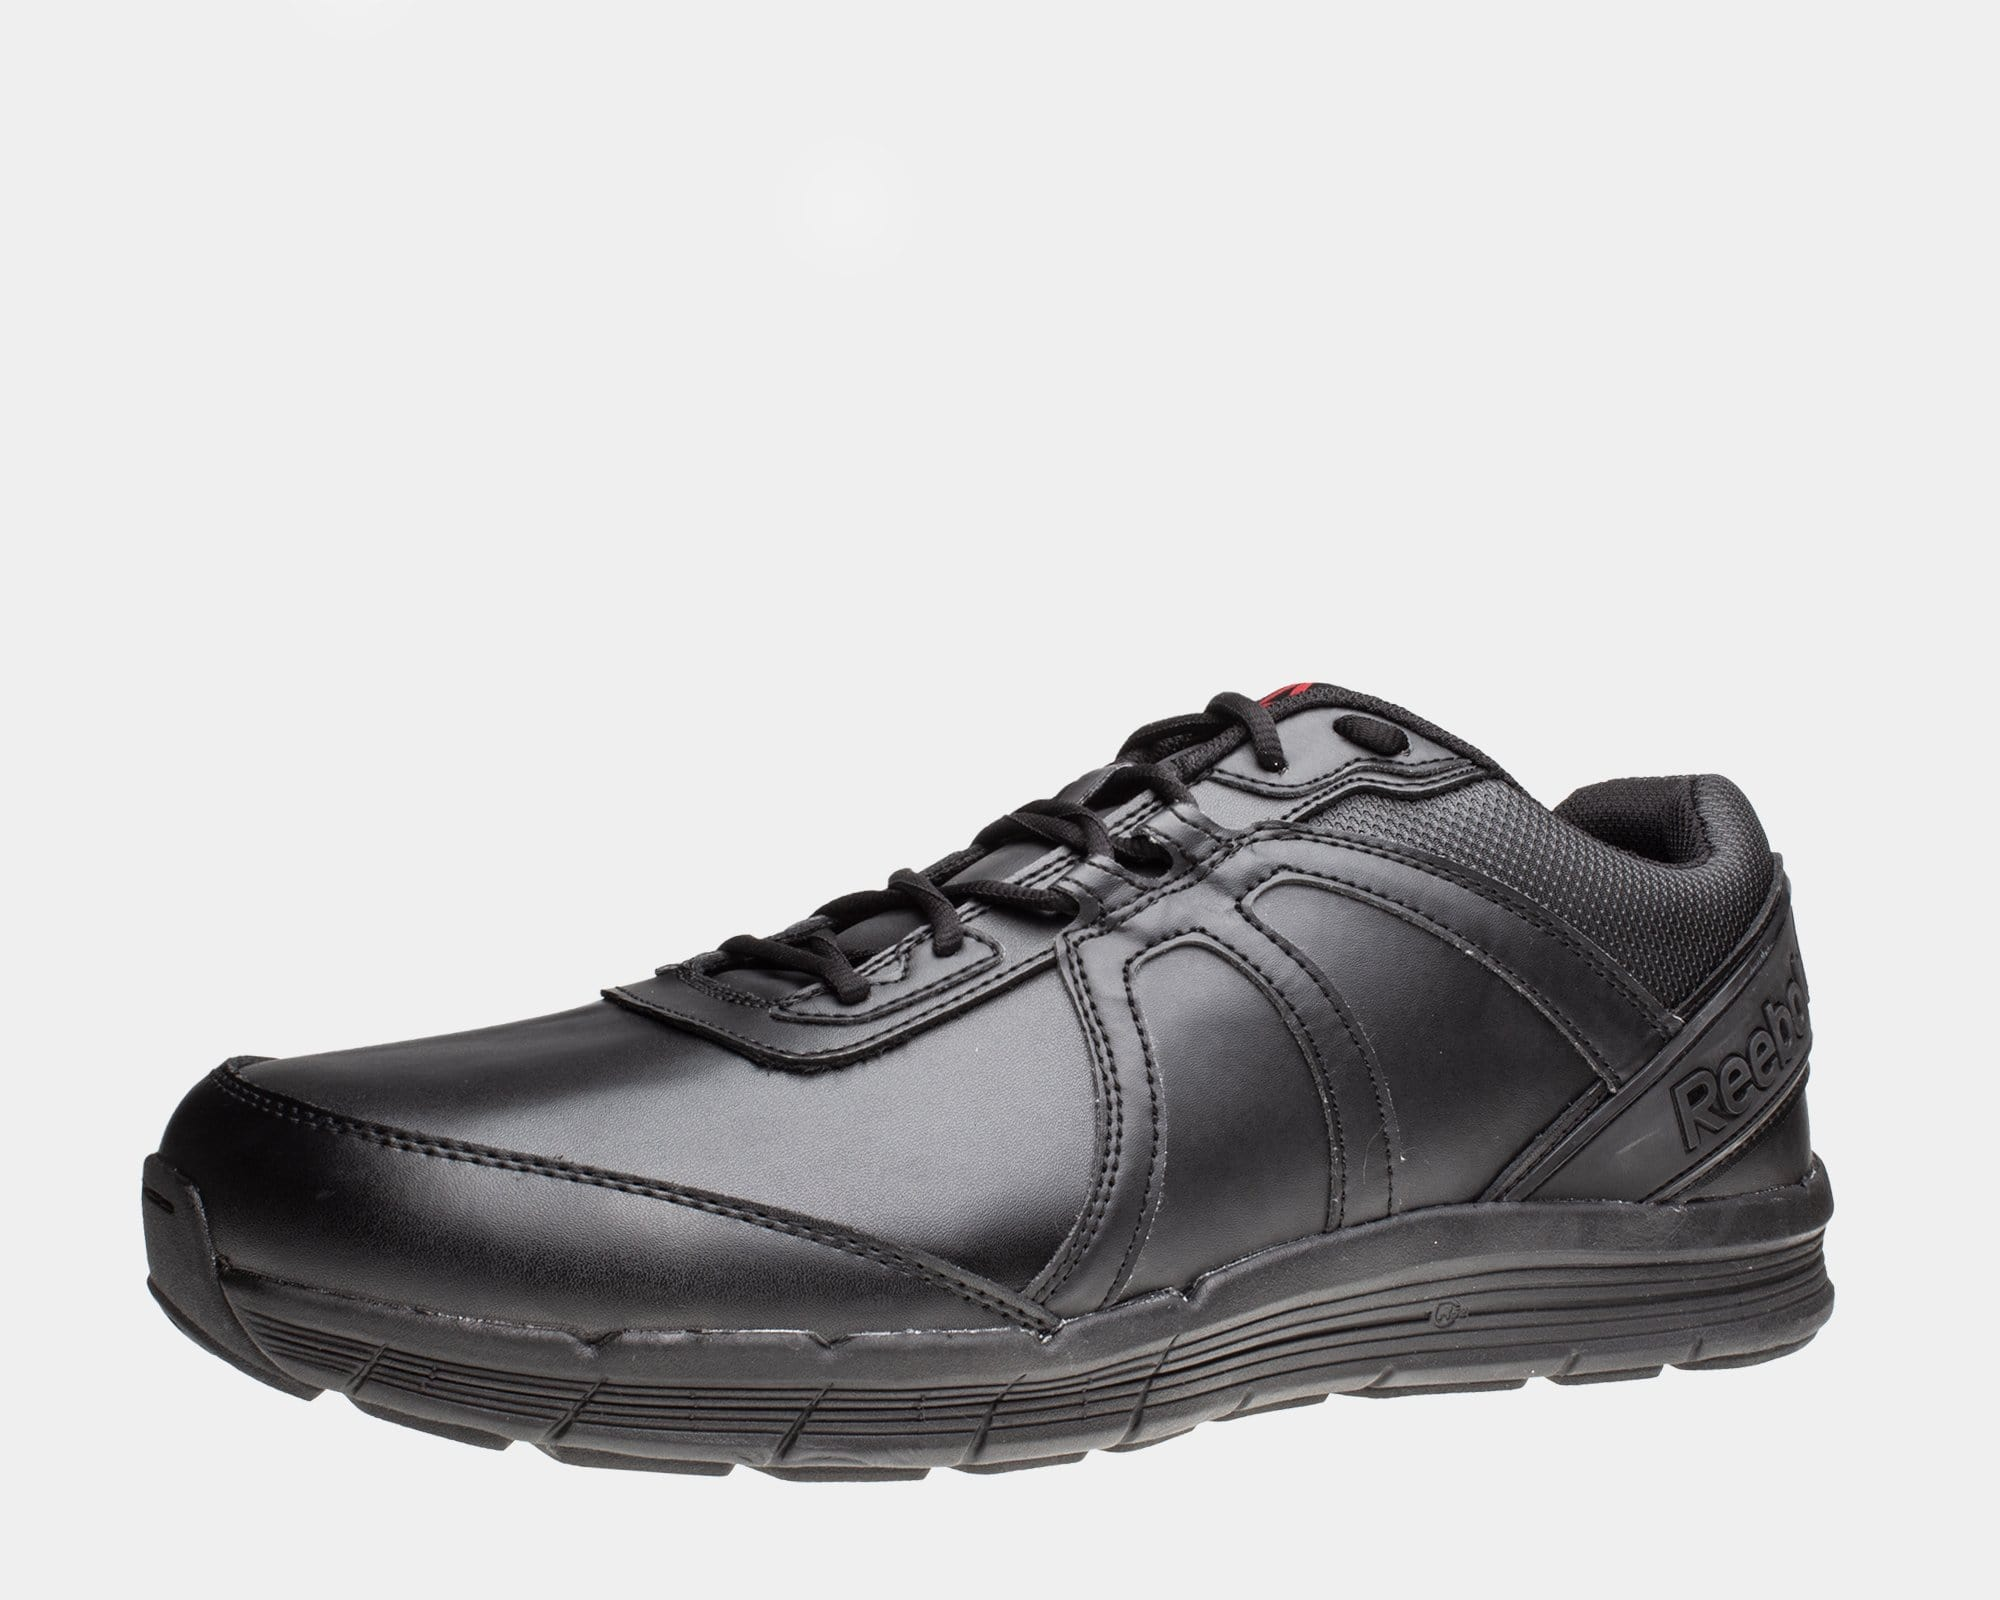 80c25394c7a Reebok Guide Work Shoes - Mens Large Sizes